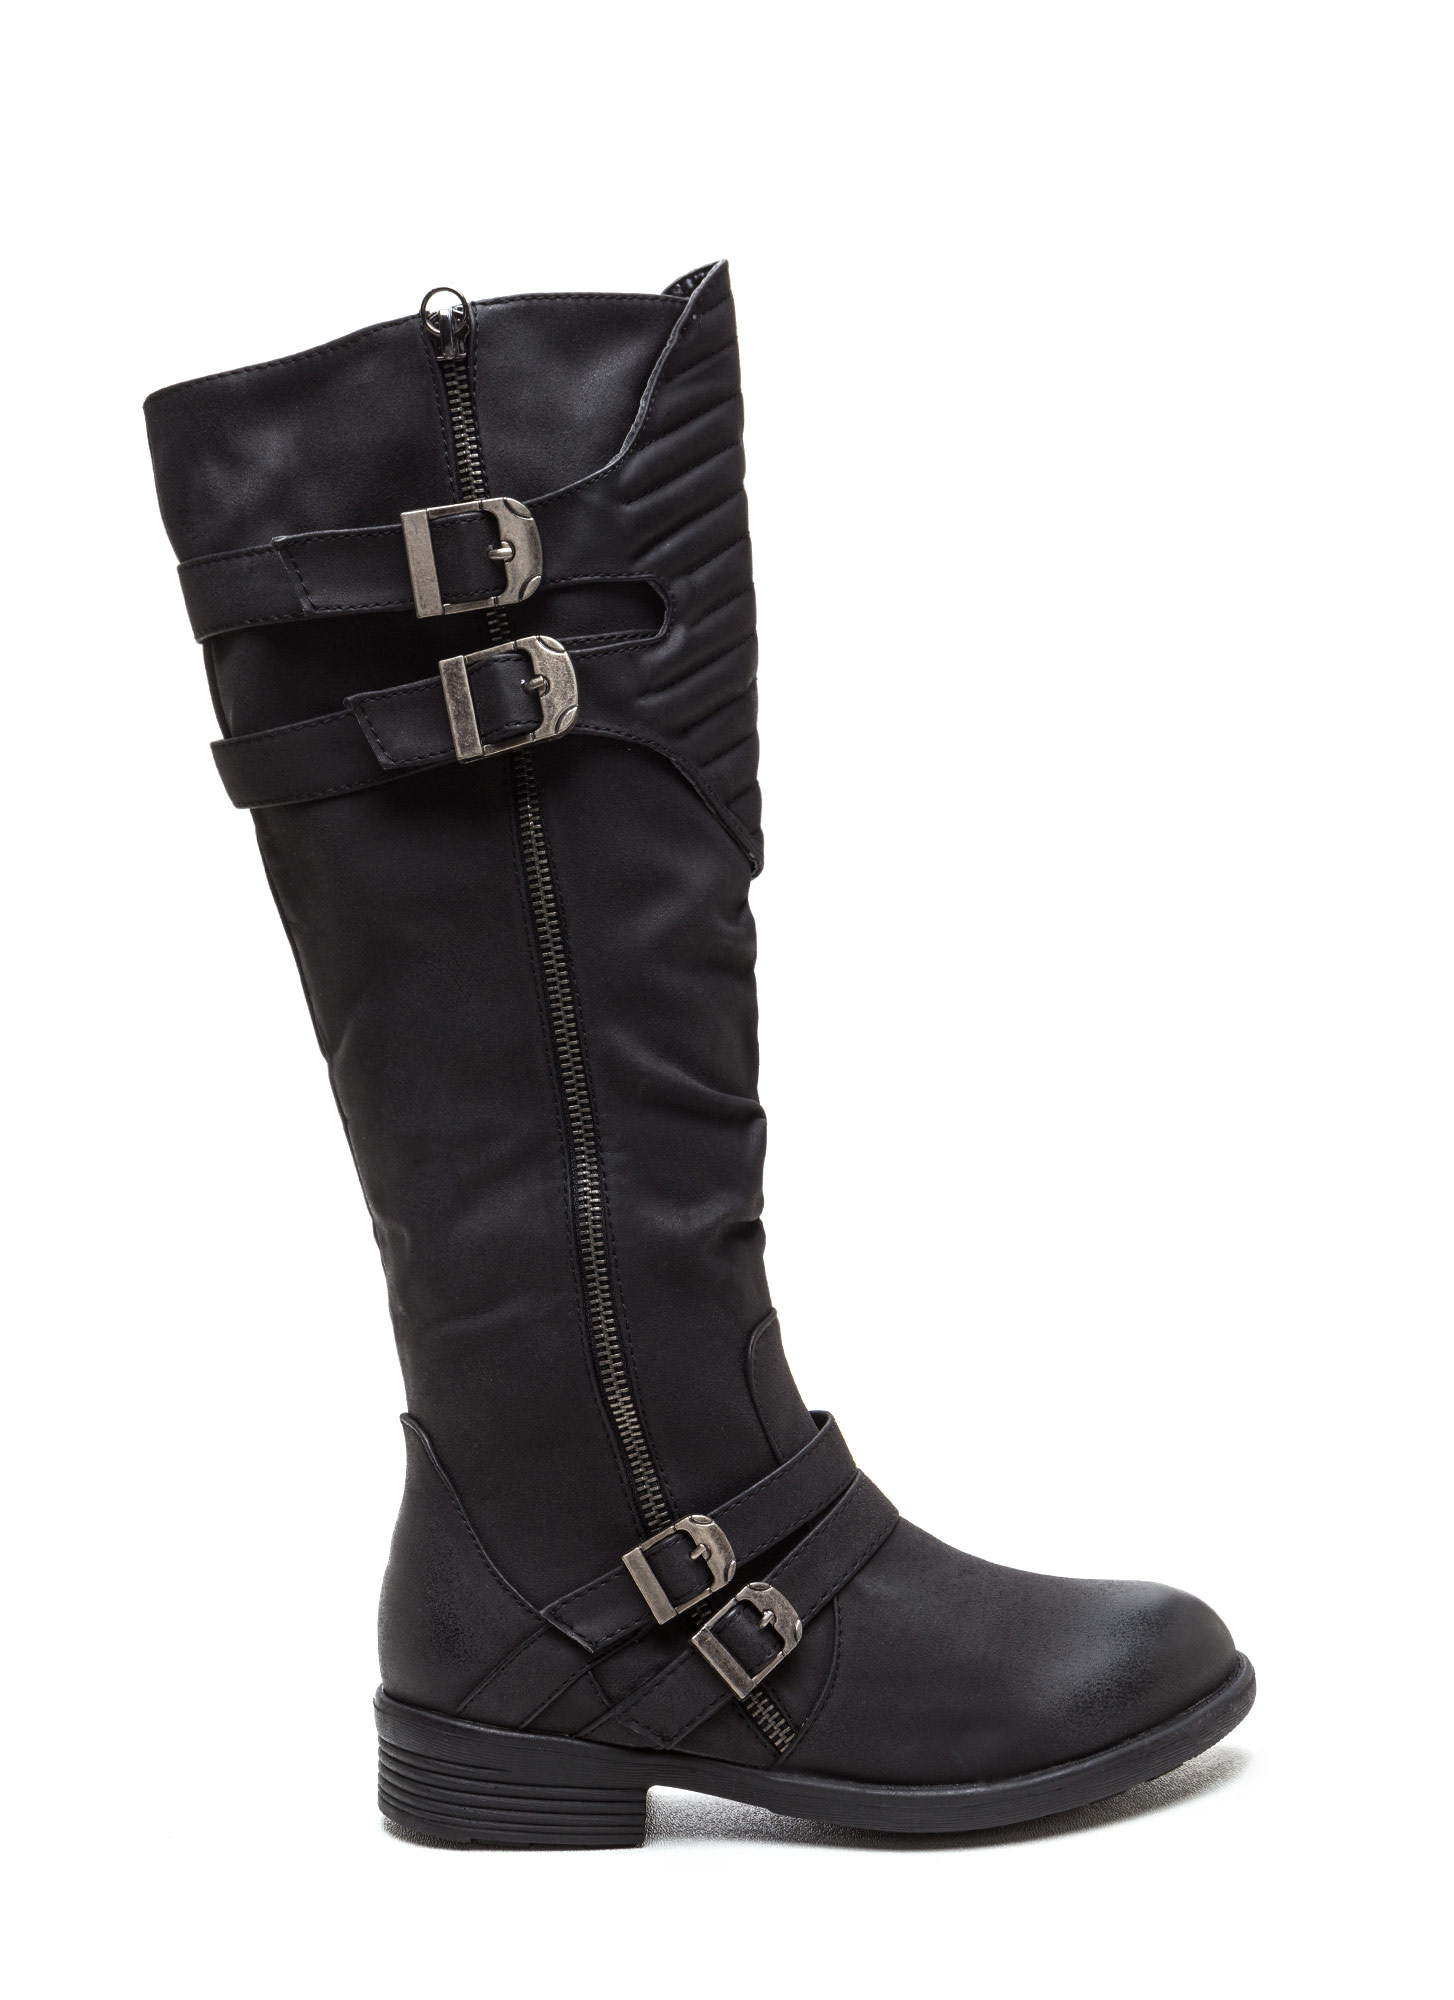 Gimme A Moment Faux Nubuck Boots BLACK (Final Sale)